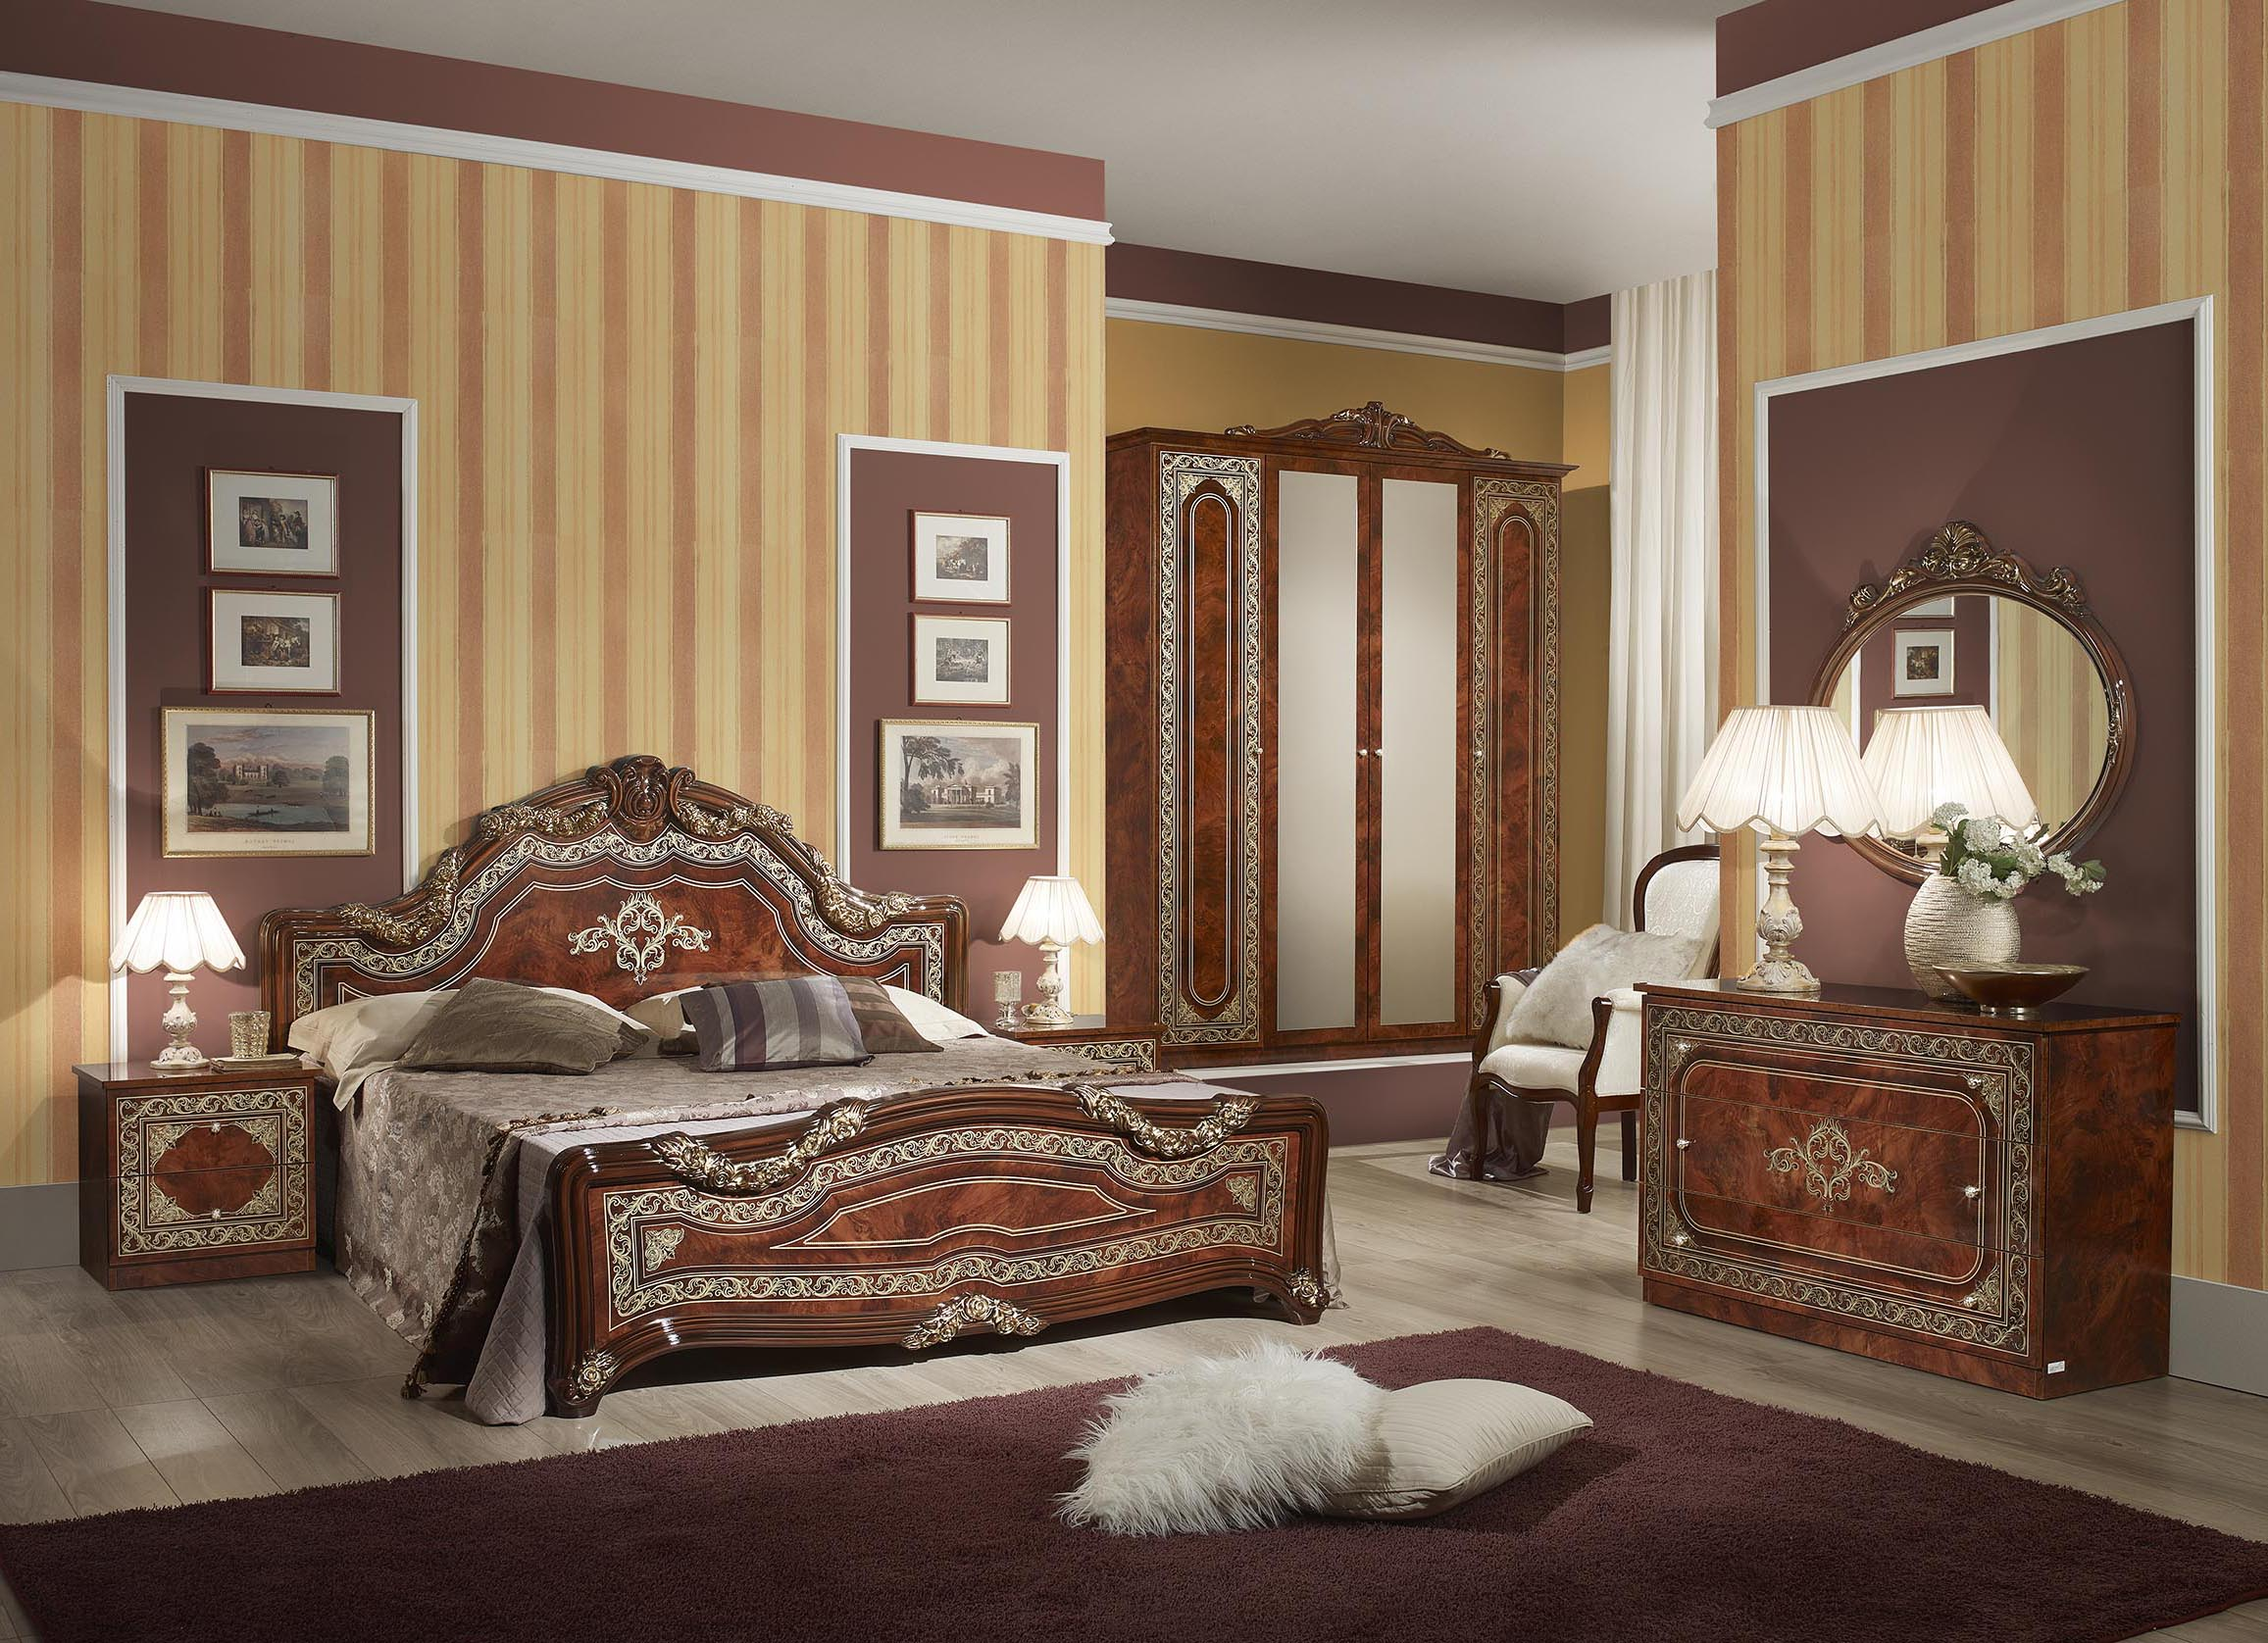 bett elena in walnuss klassisch design 180x200 cm mit. Black Bedroom Furniture Sets. Home Design Ideas